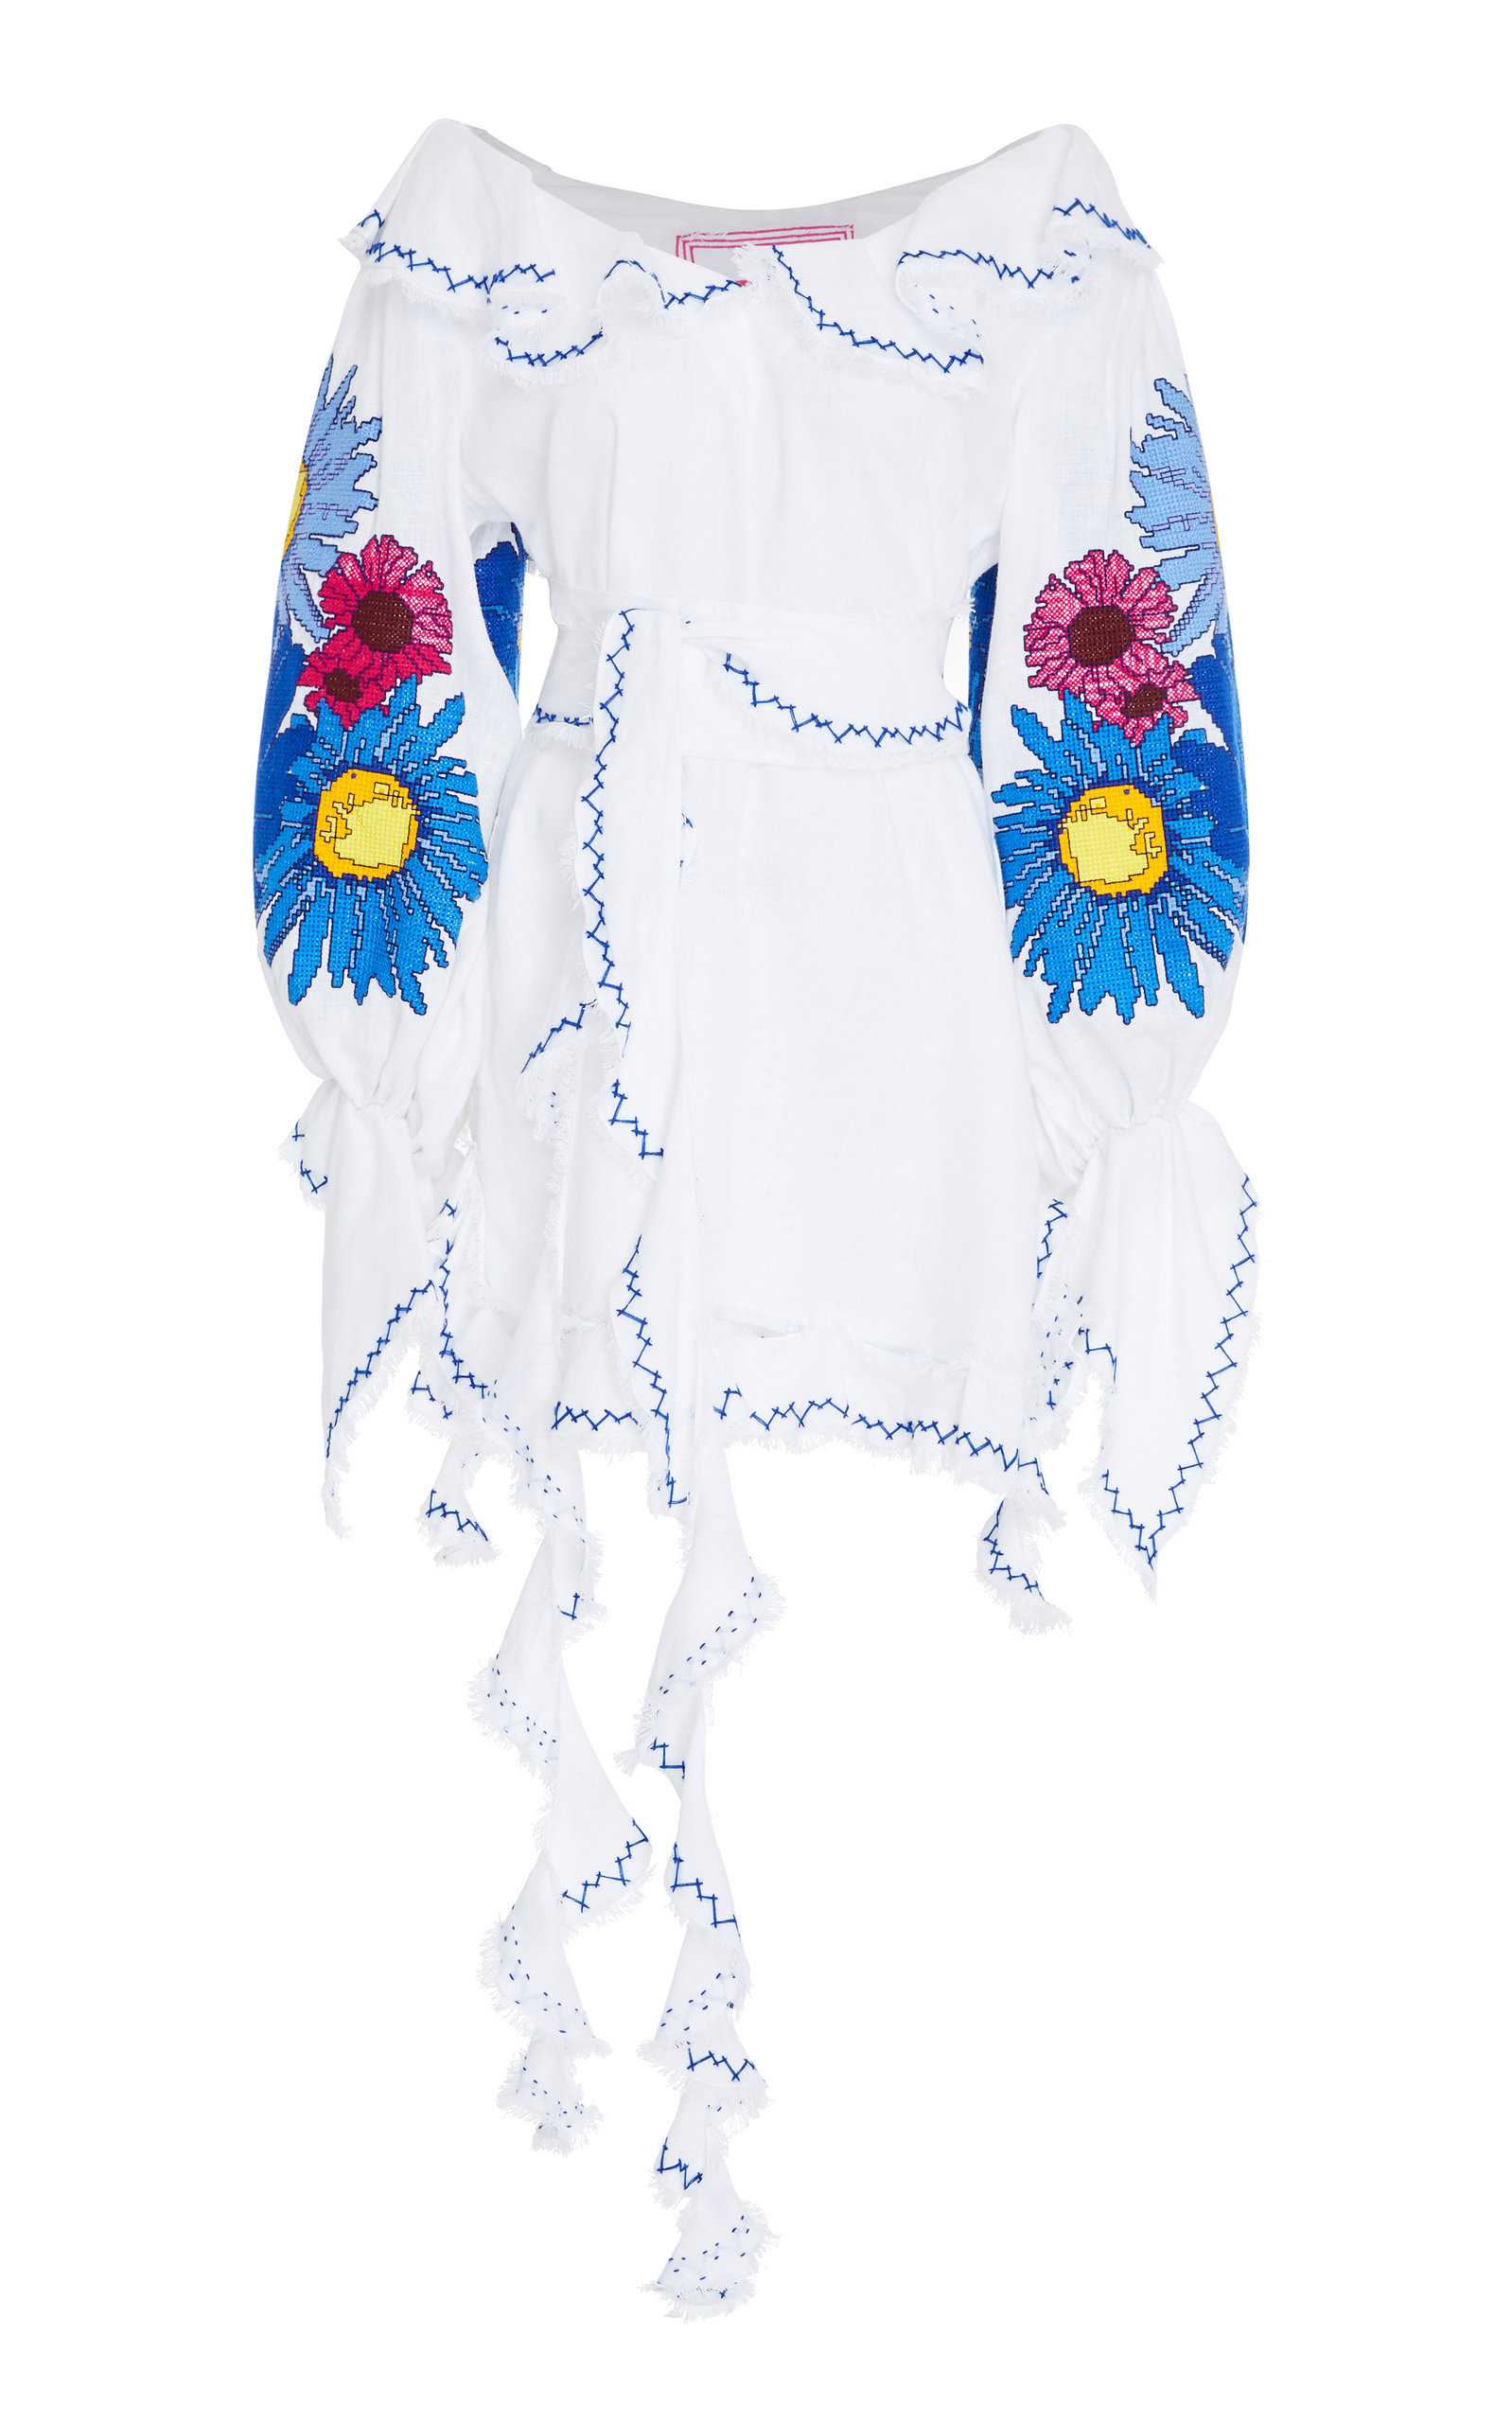 YULIYA MAGDYCH LOVES ME LOVES ME NOT EMBROIDERED LINEN APRON DRESS